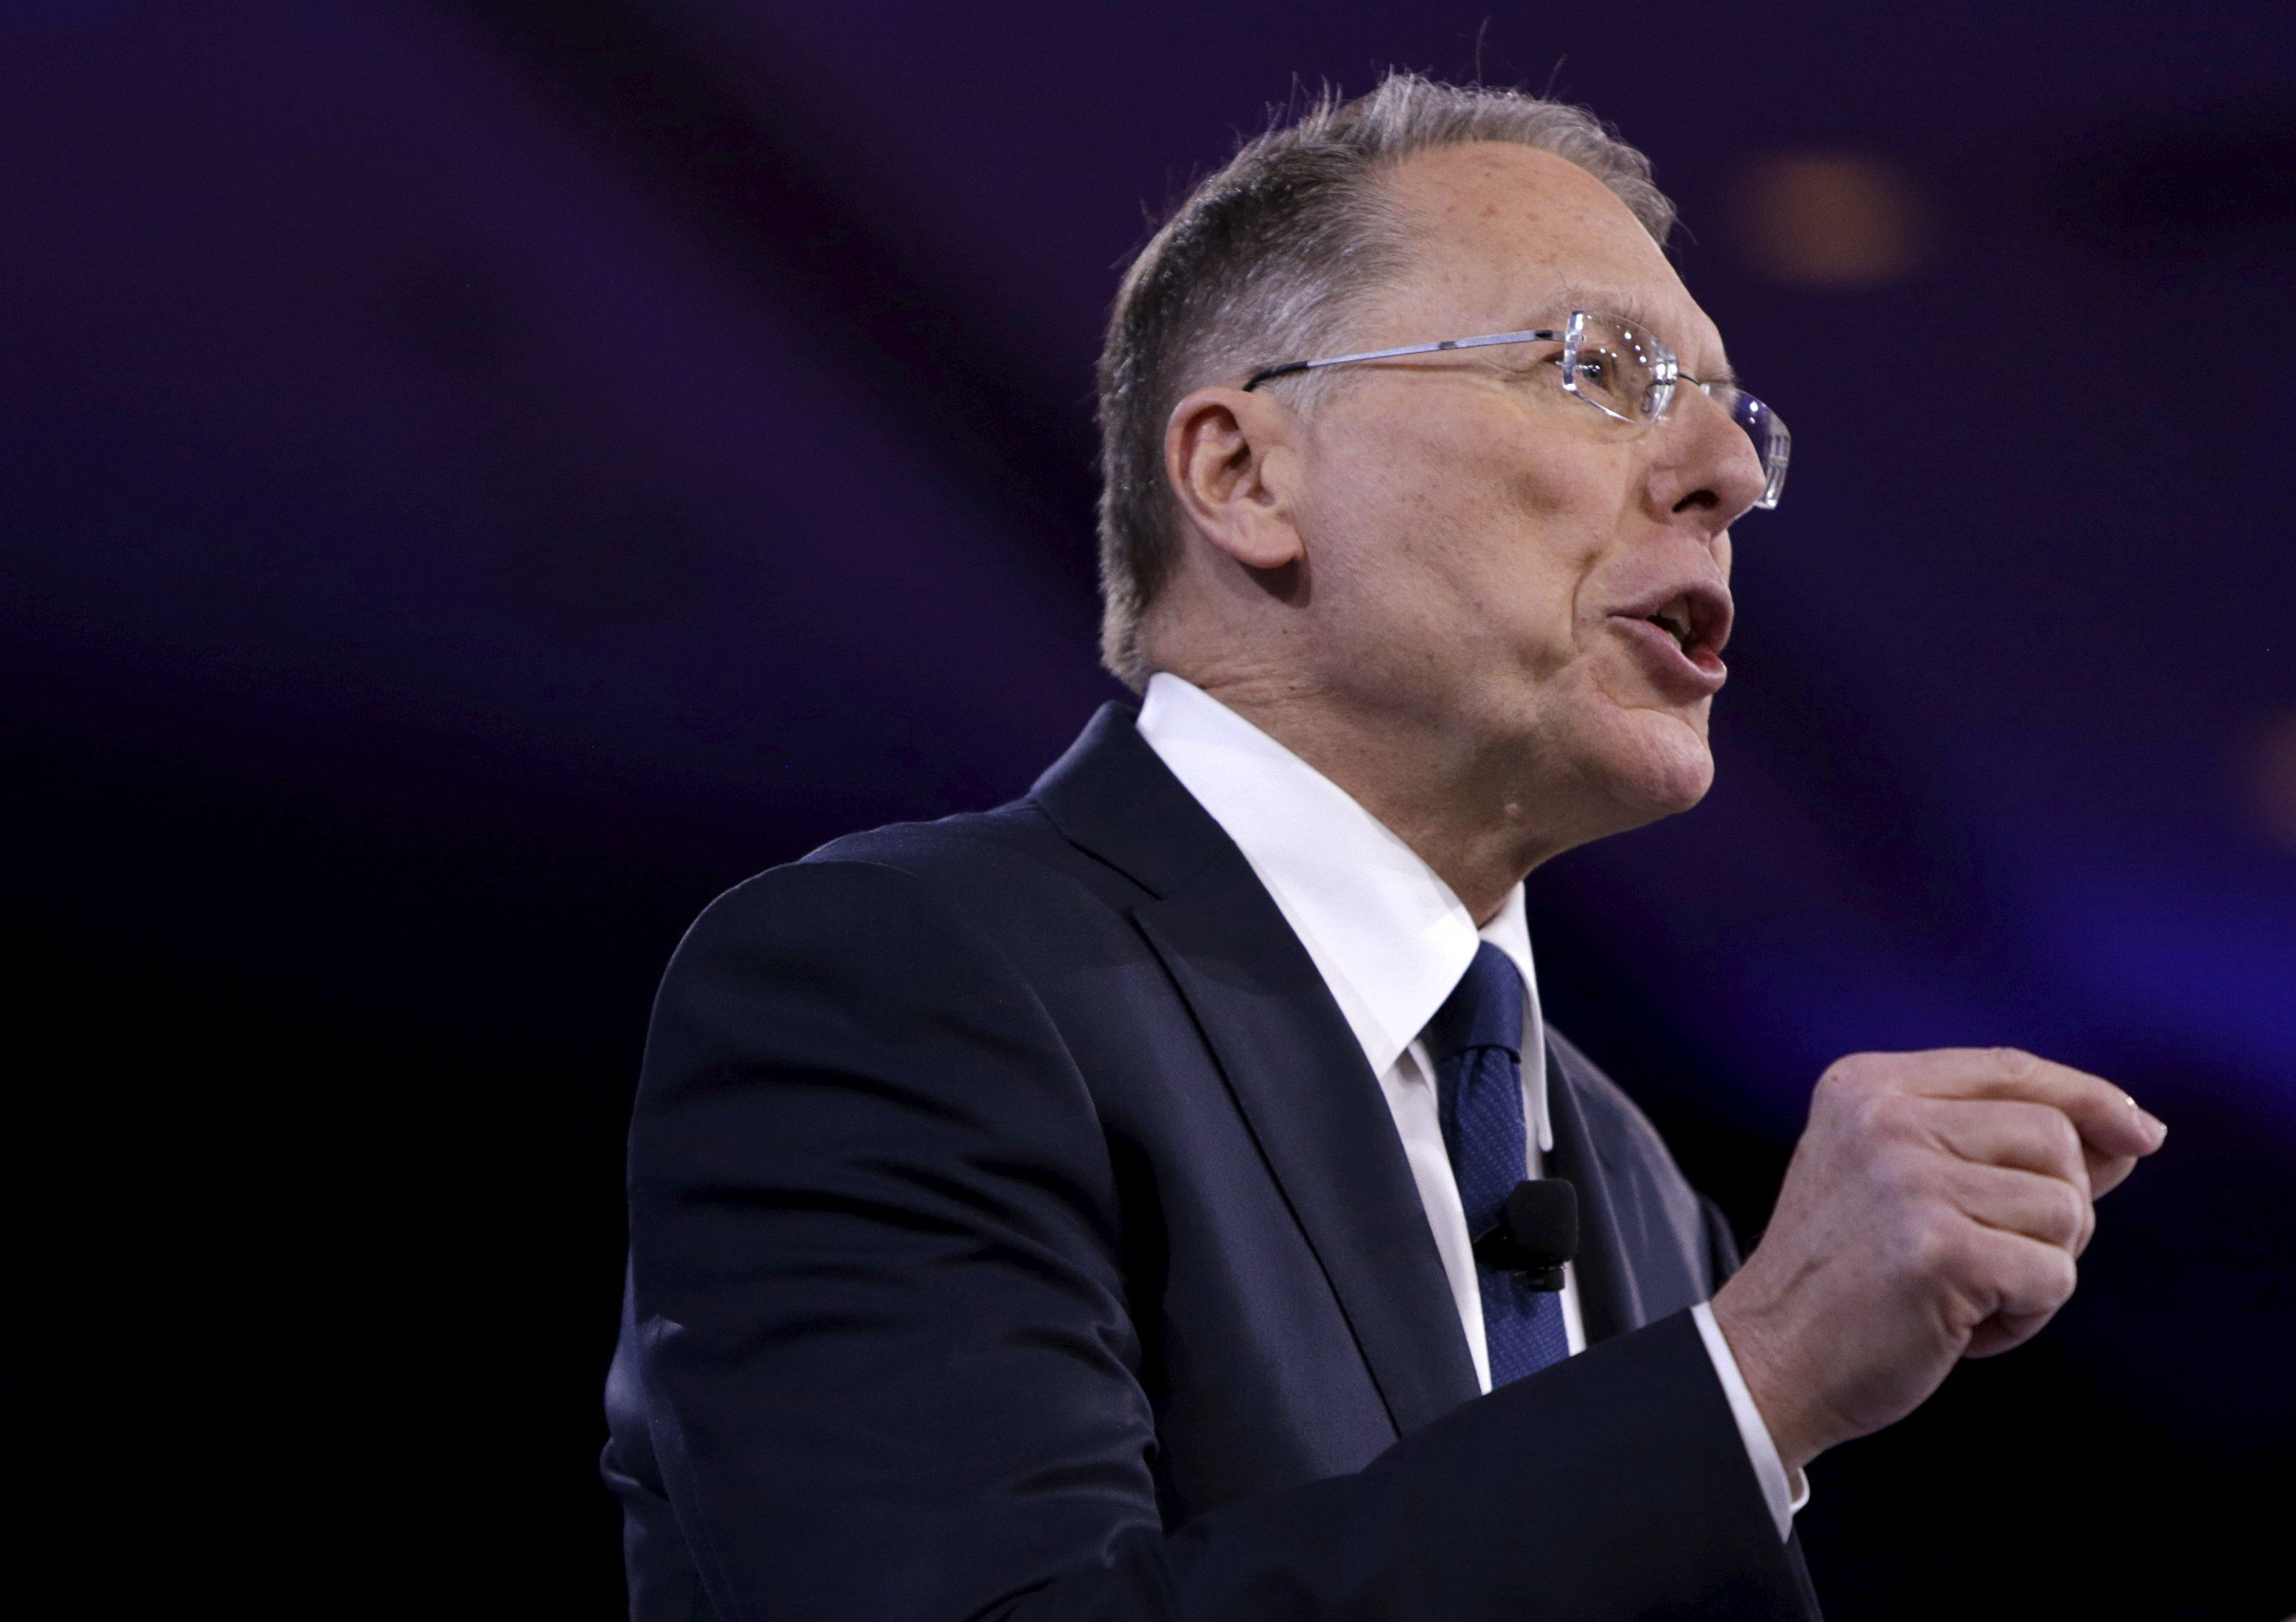 National Rifle Association (NRA) CEO Wayne LaPierre speaks at the American Conservative Union 2016 annual conference in Maryland, March 3, 2016. REUTERS/Gary Cameron